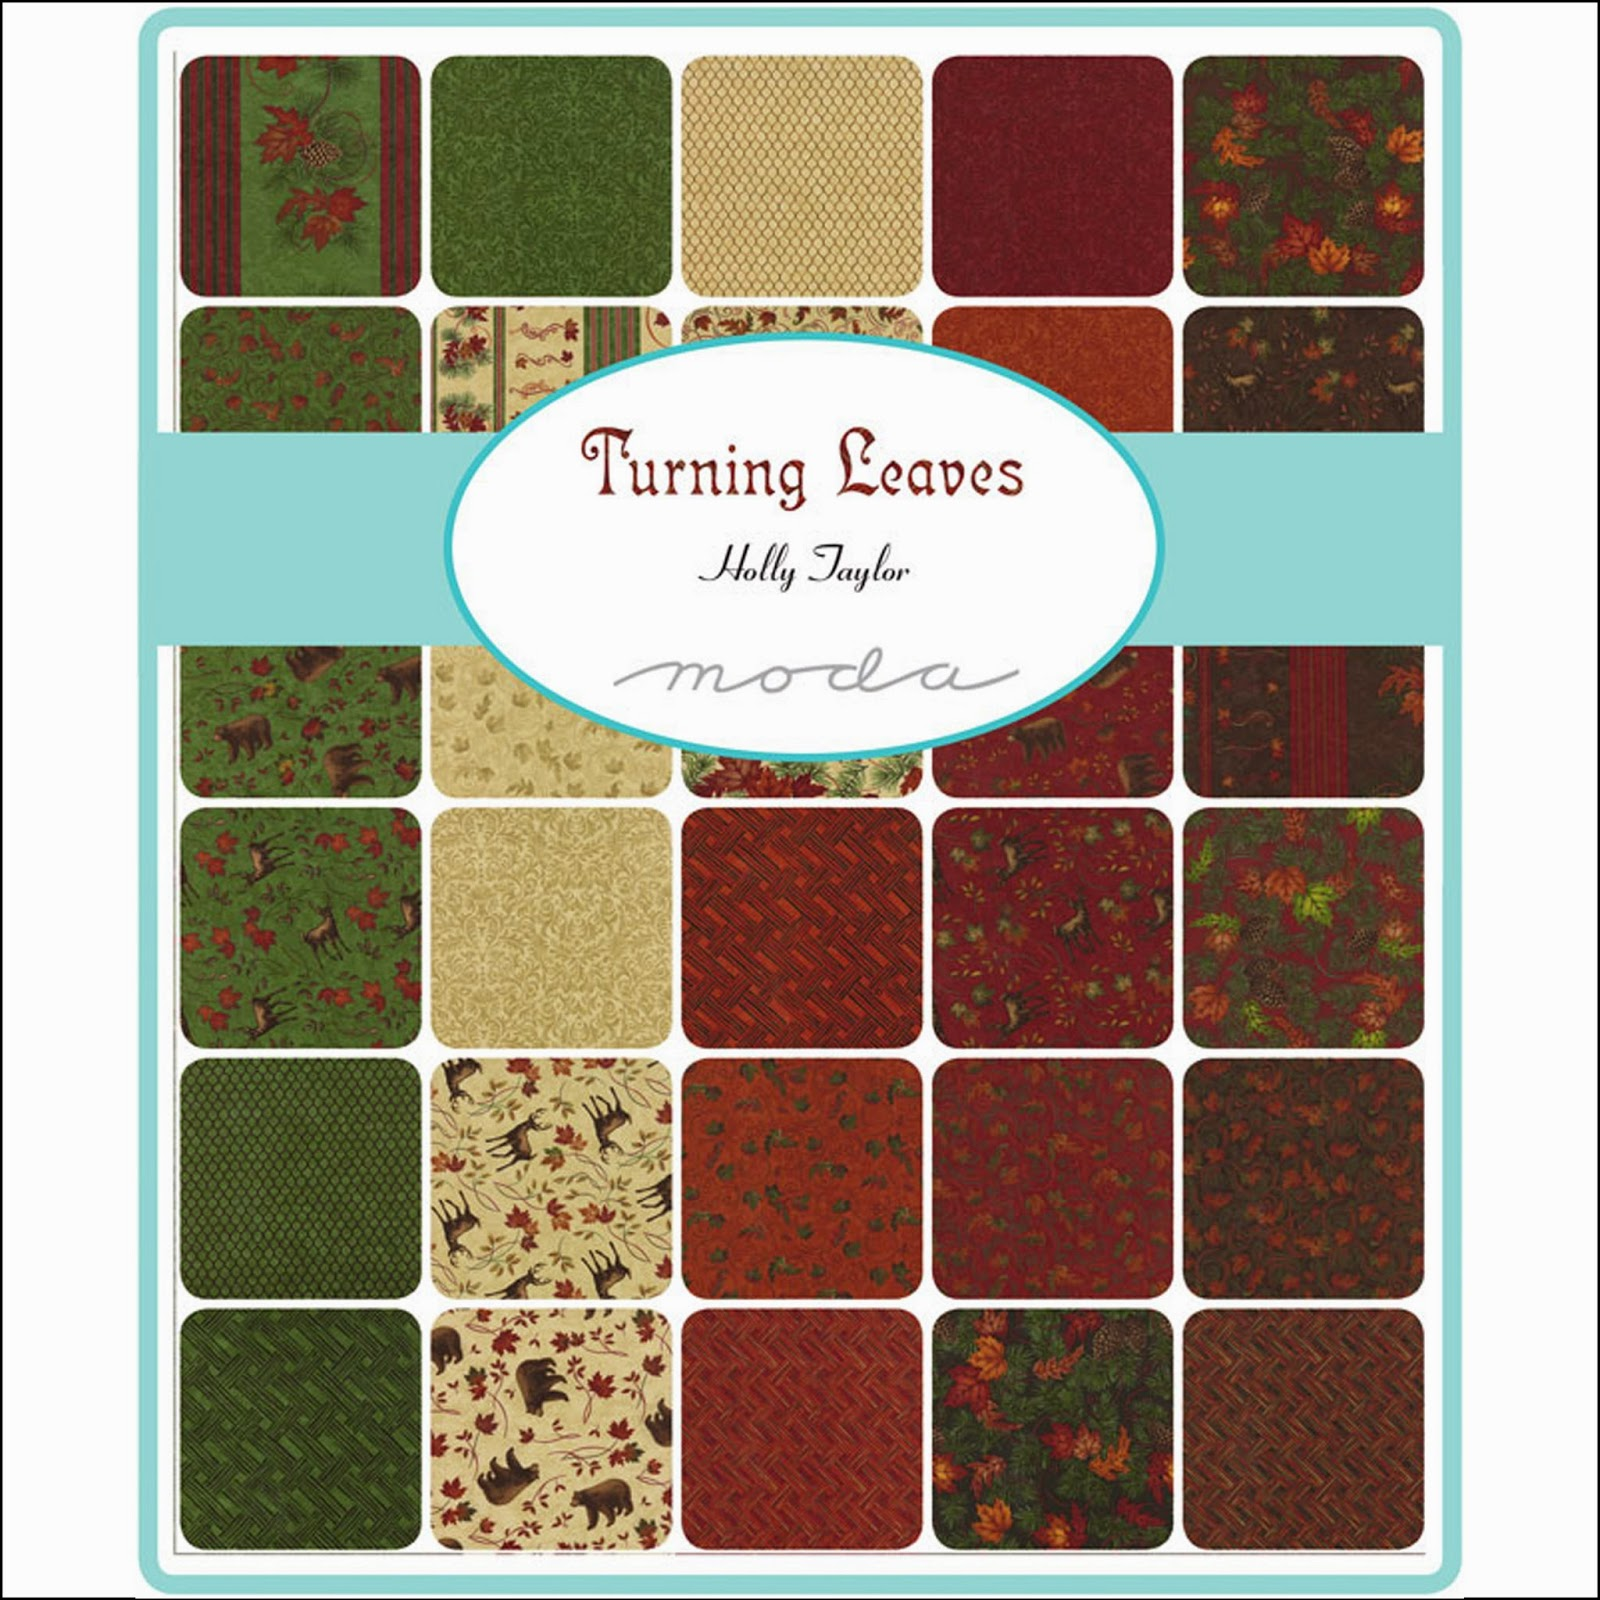 Moda TURNING LEAVES Quilt Fabric by Holly Taylor for Moda Fabrics